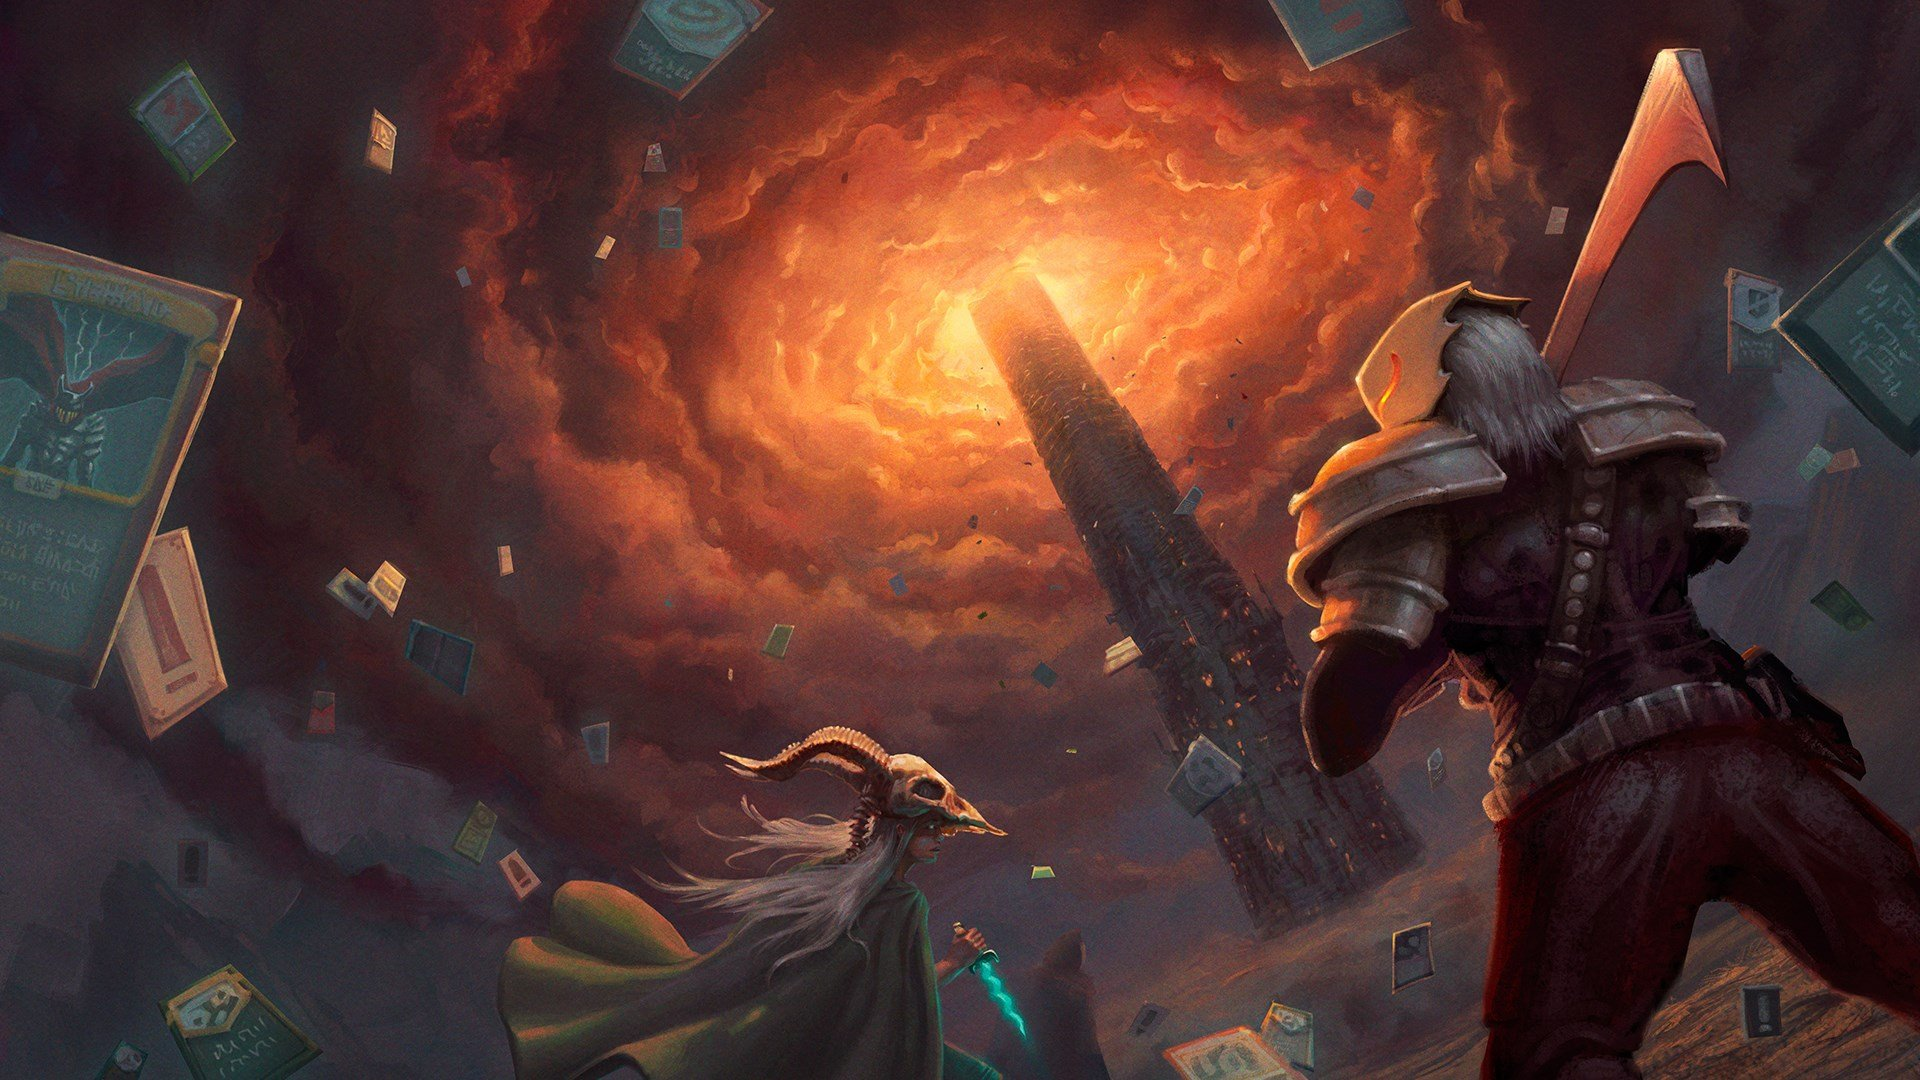 Steam has deals on hundreds of indie games for Black Friday 2019, including Slay the Spire!